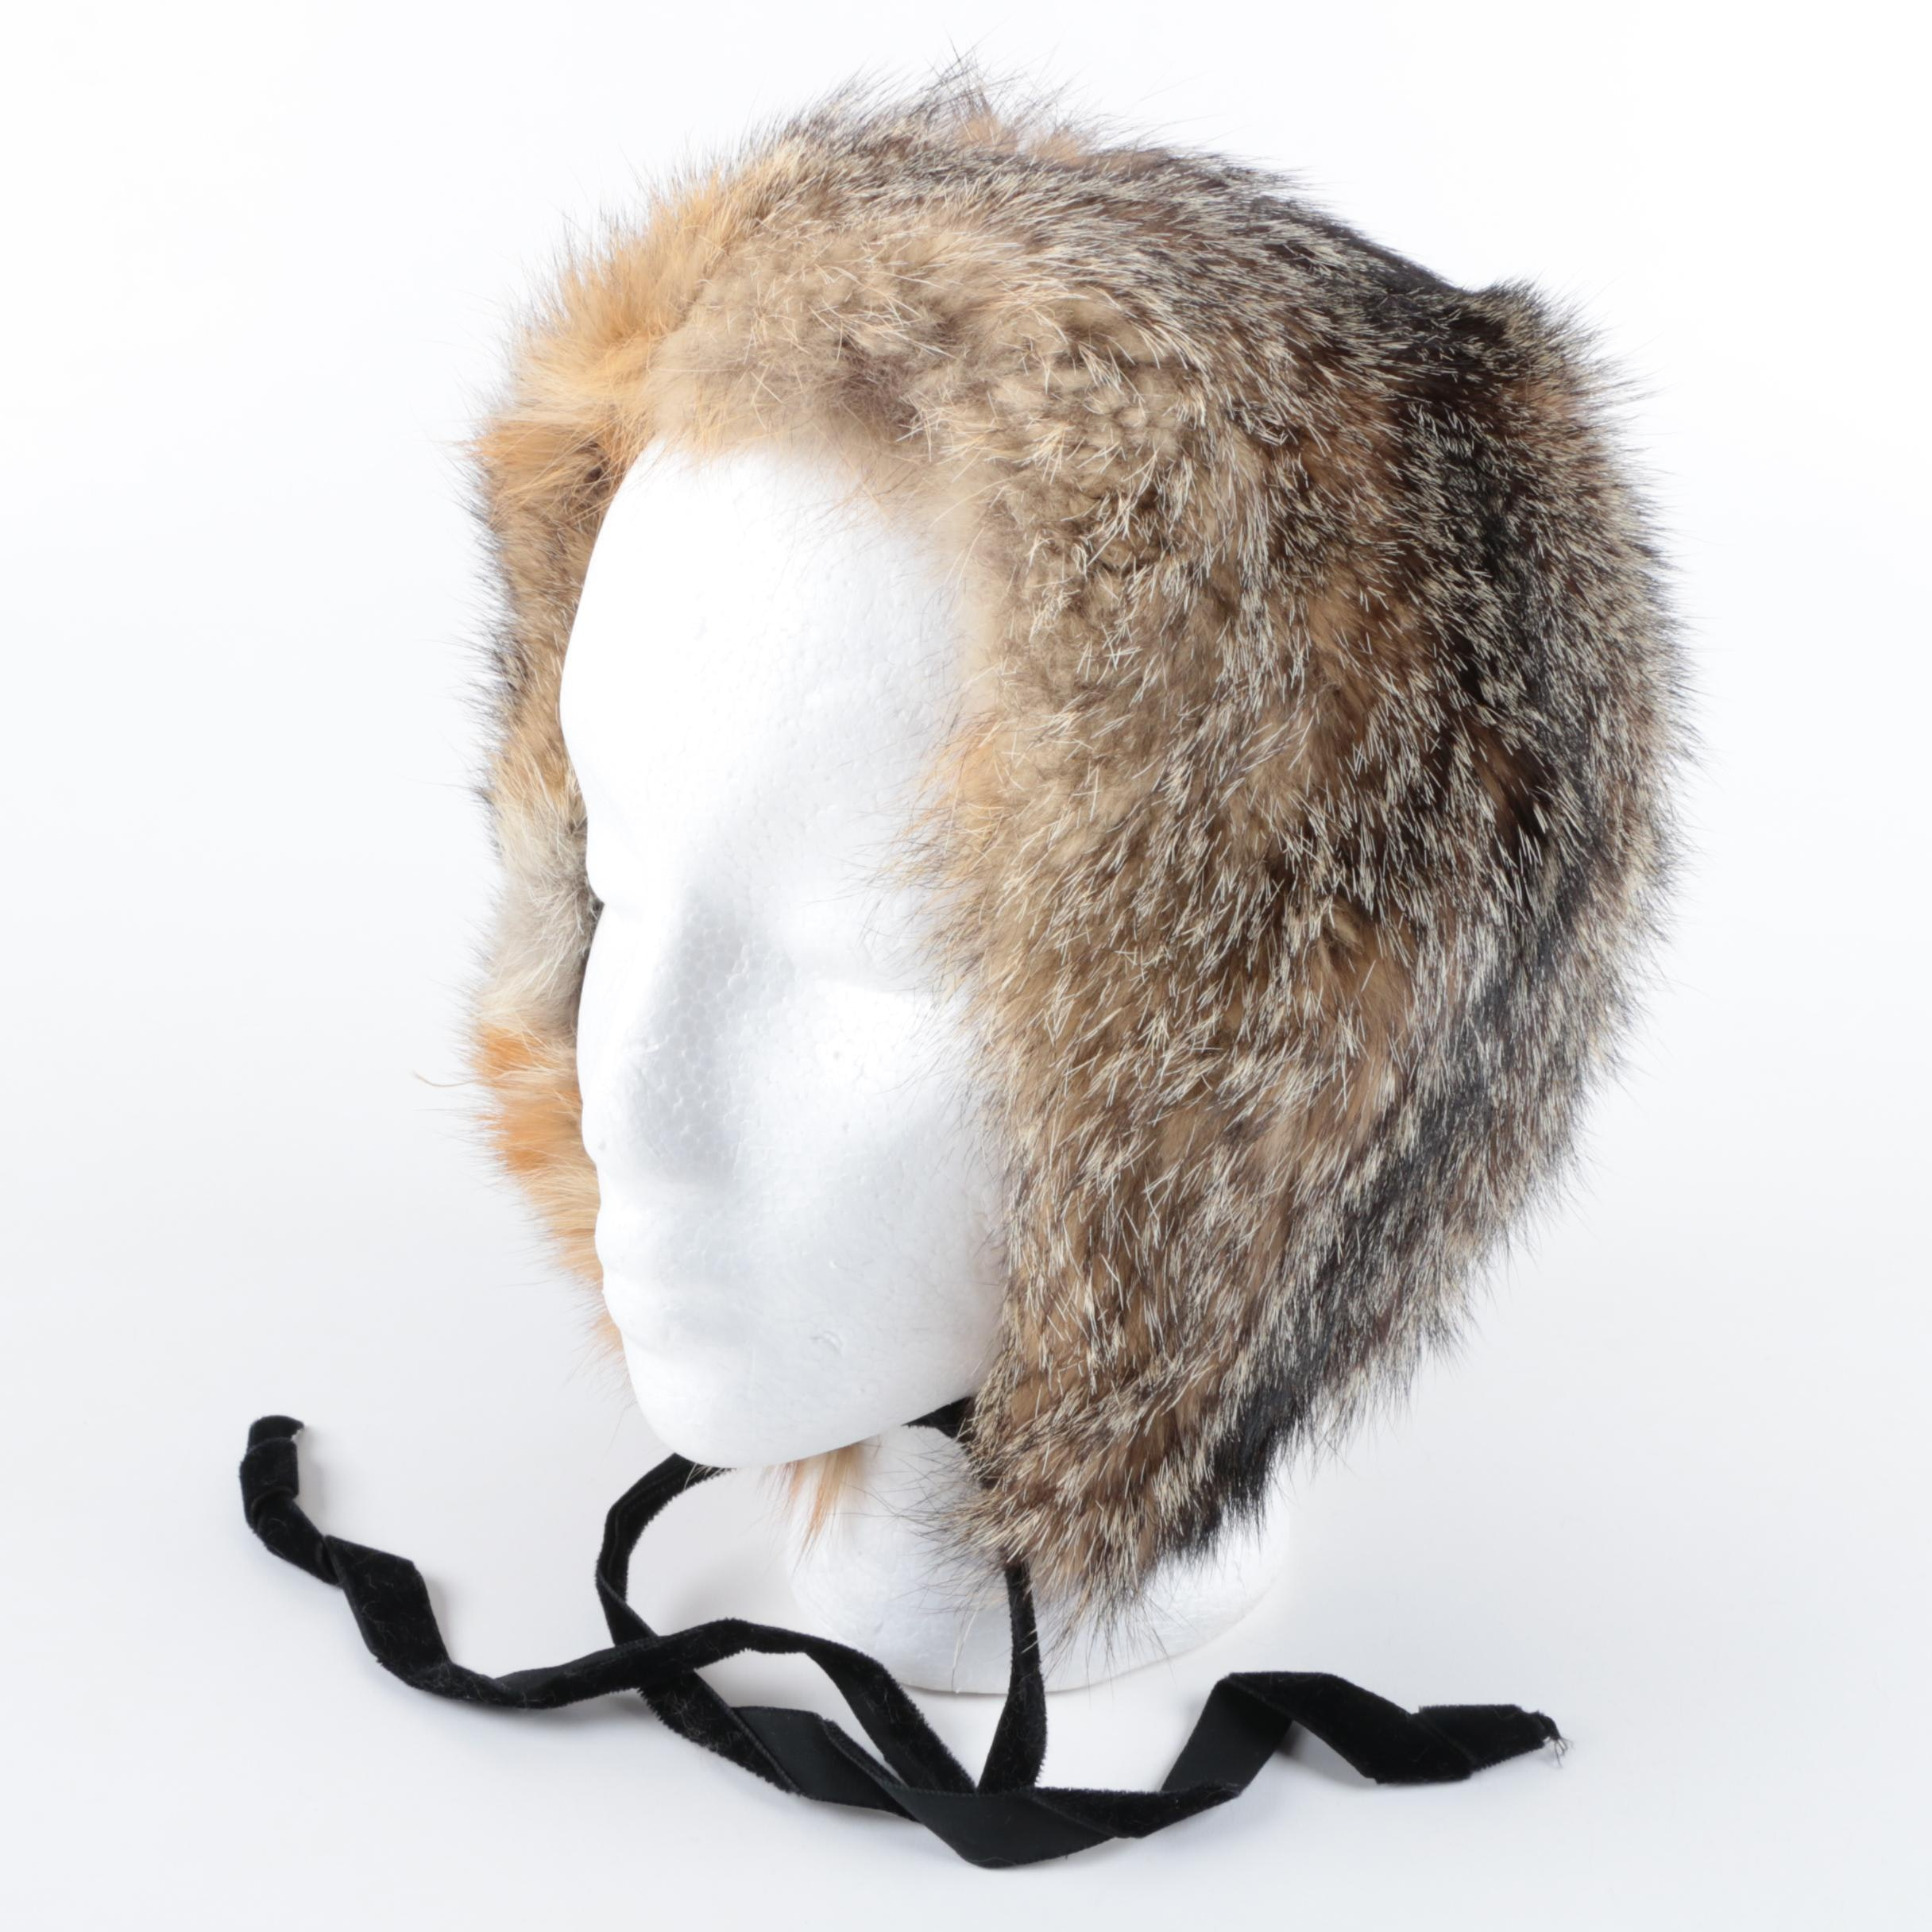 Vintage Gotham L.S. Ayres & Co. Raccoon Fur Hat